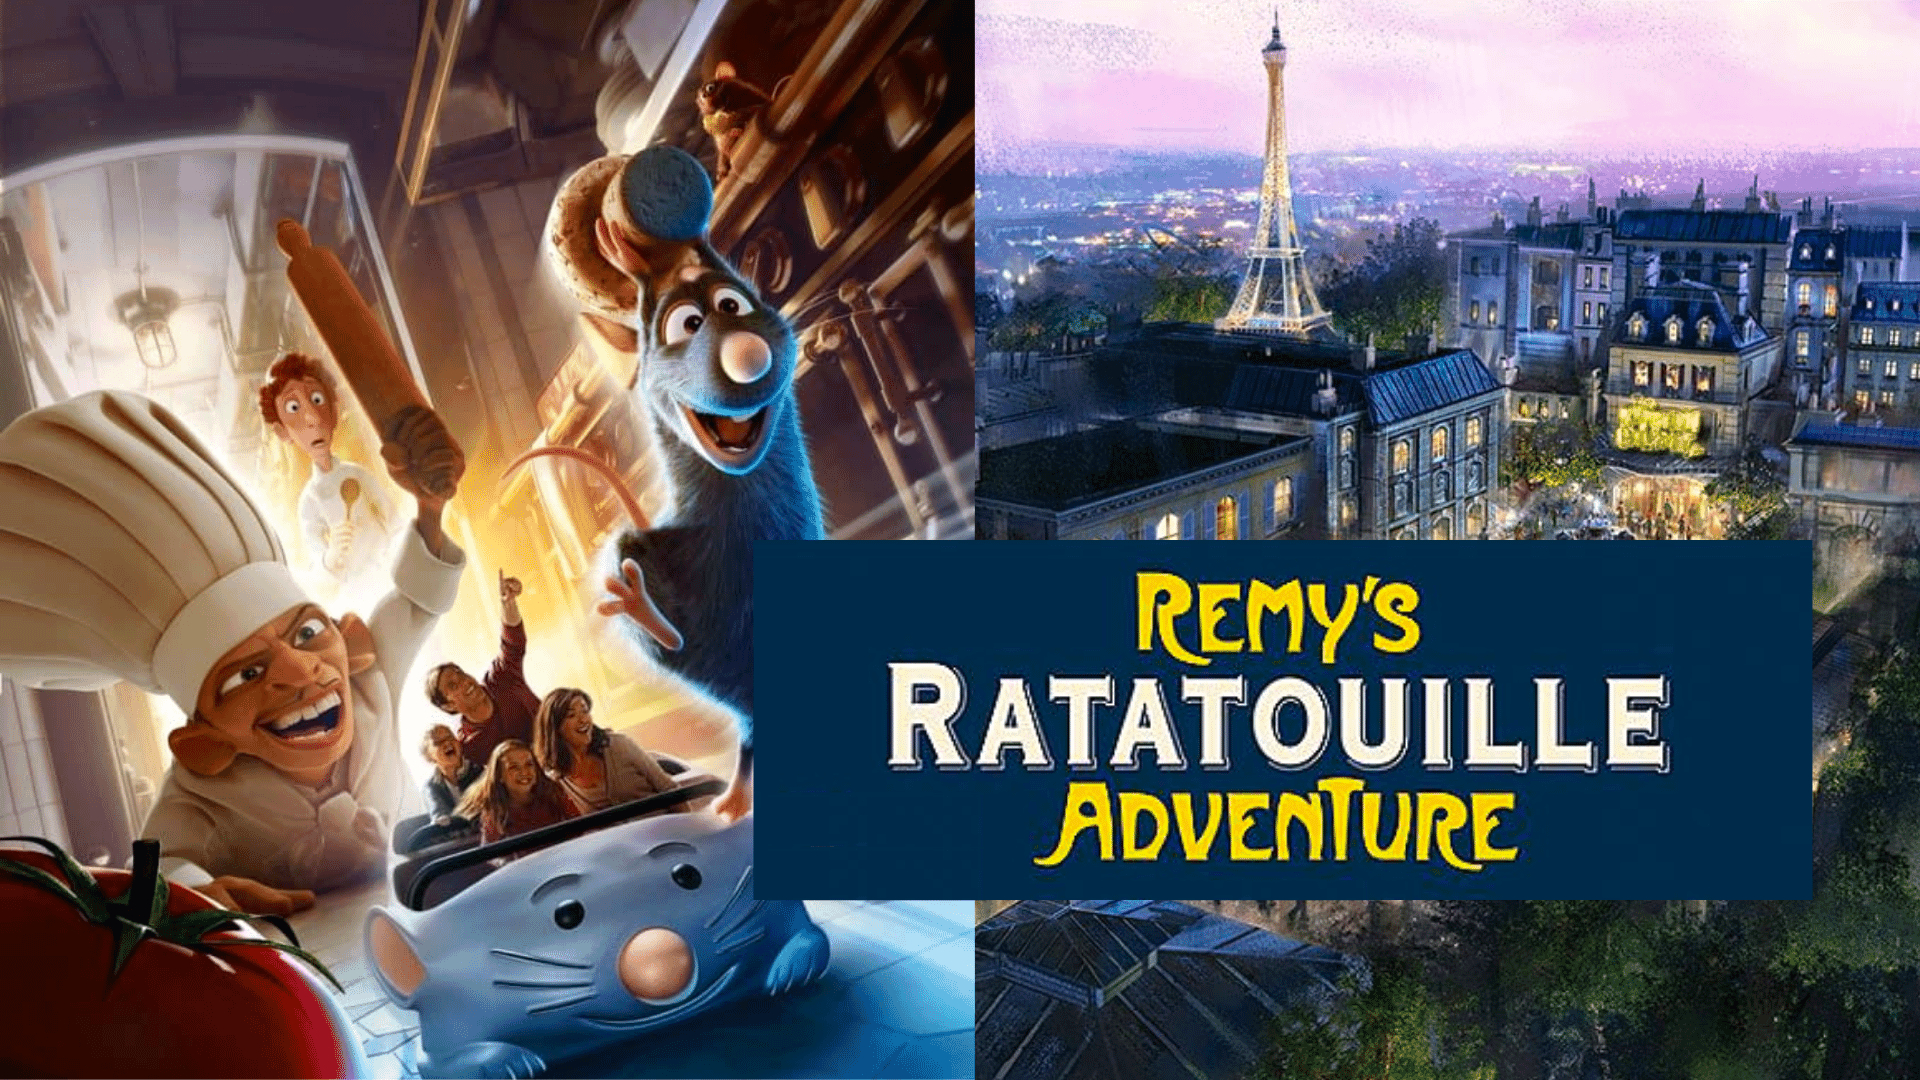 Rumor: Remy'S Ratatouille Adventure Ride Will Not Open In